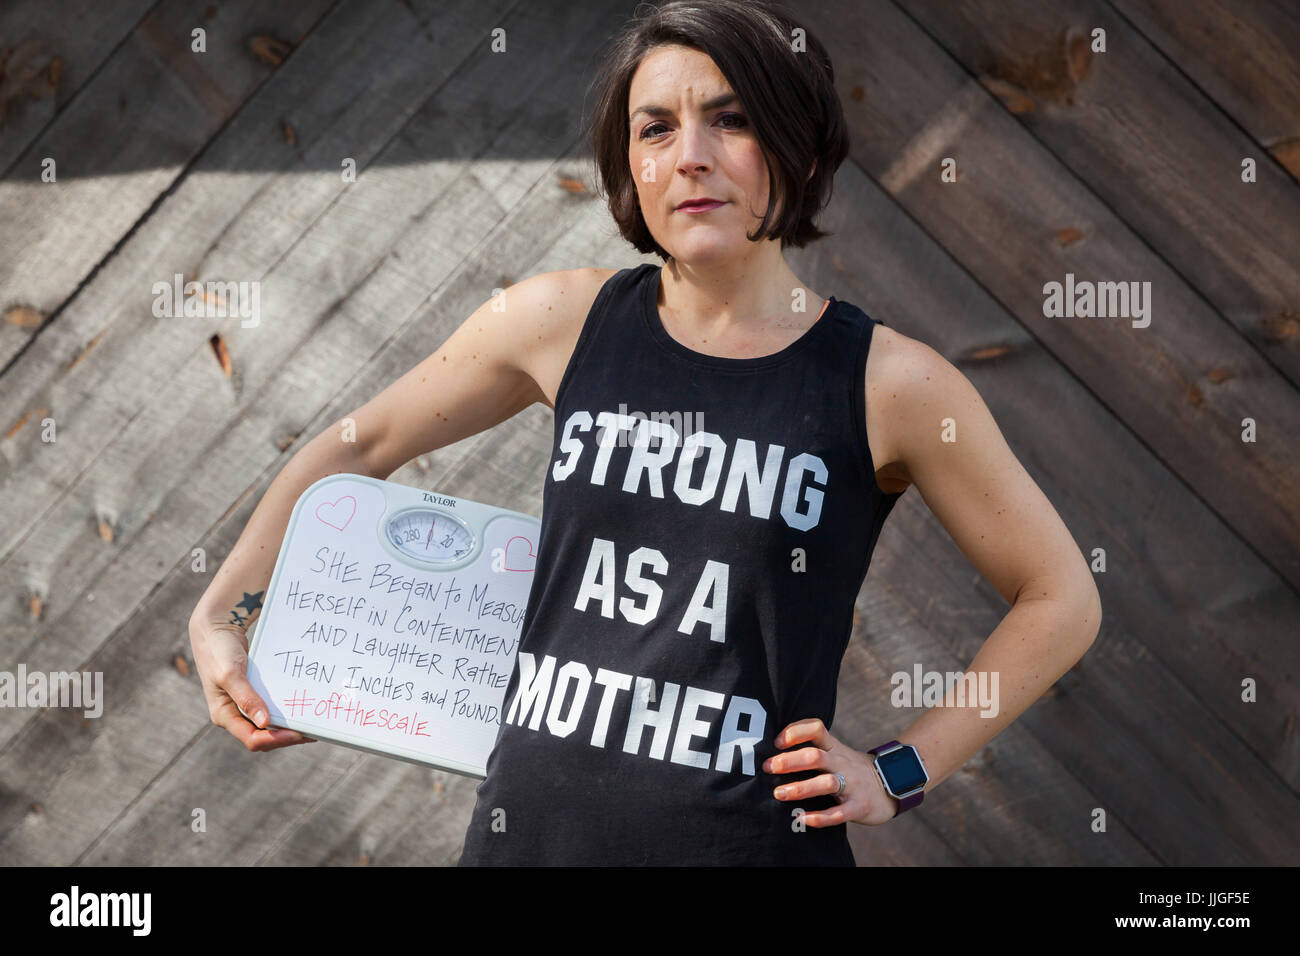 b414ece54d6be Strong woman holding a scale with her hand on her hip in a black tank top